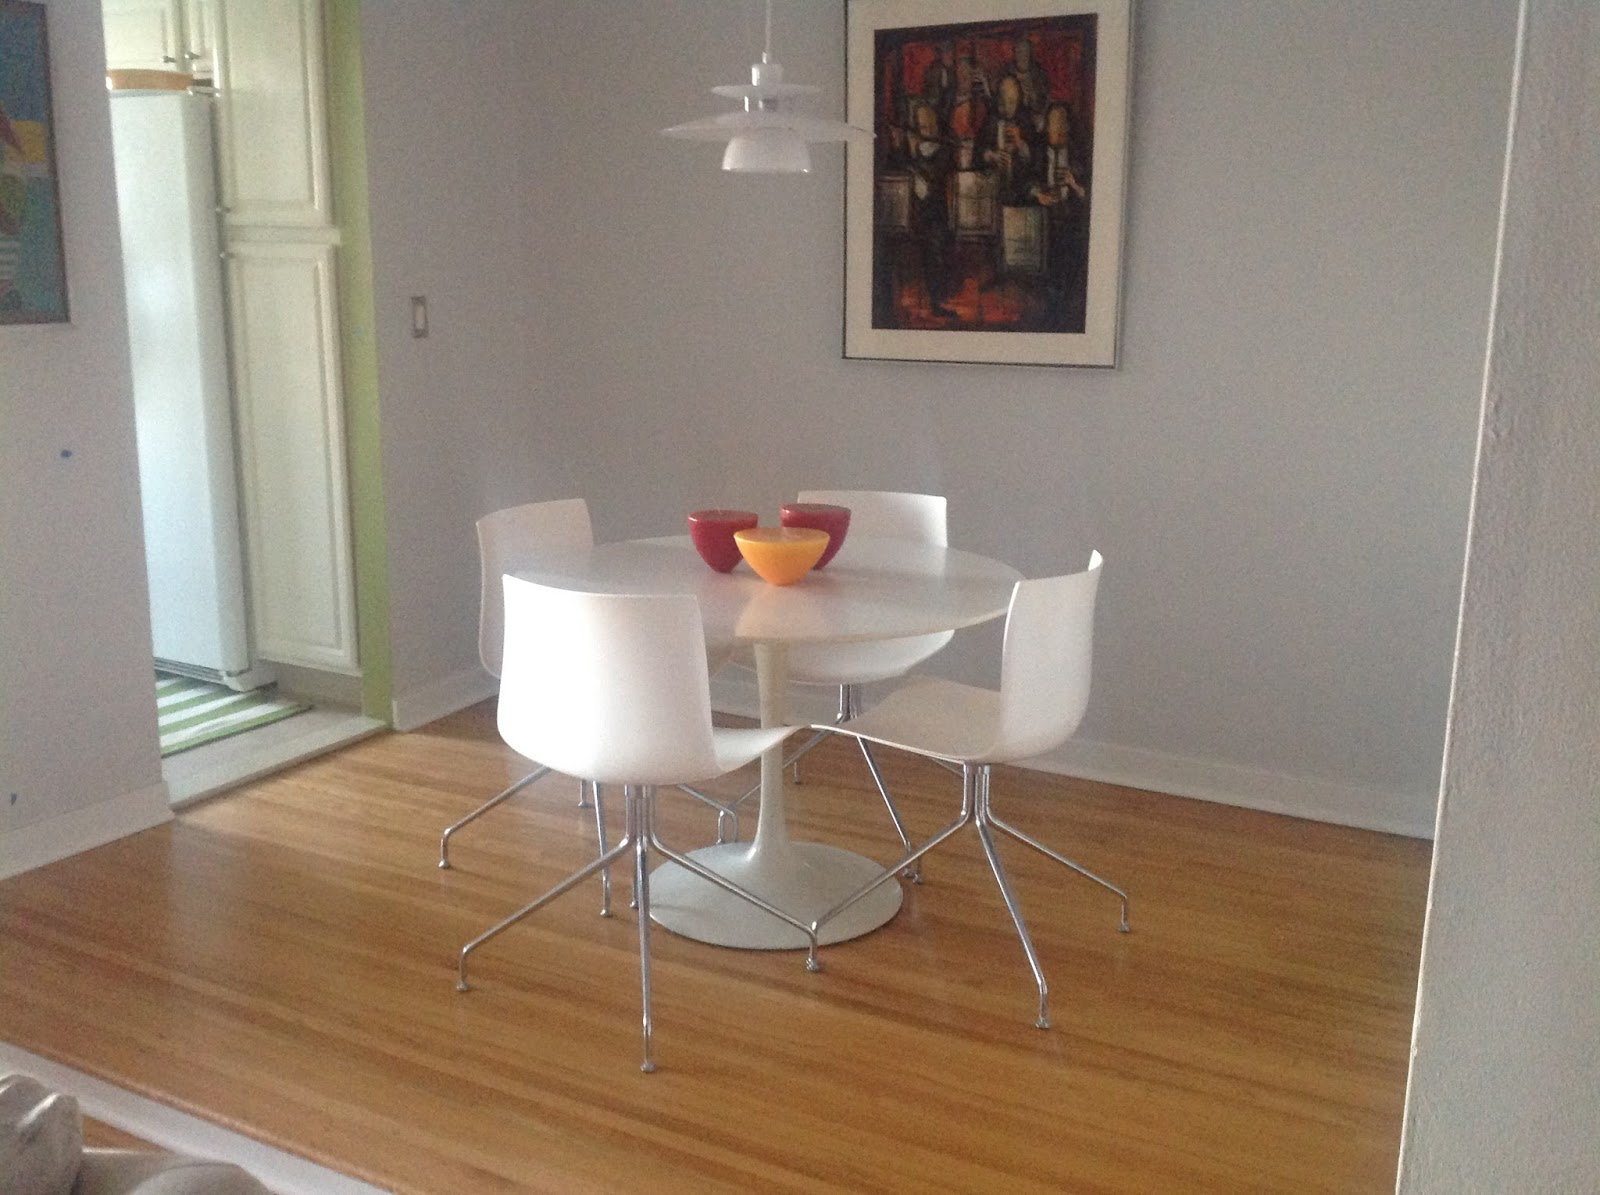 Ome Design Decor And Renovation Renovor H - Saarinen table top replacement